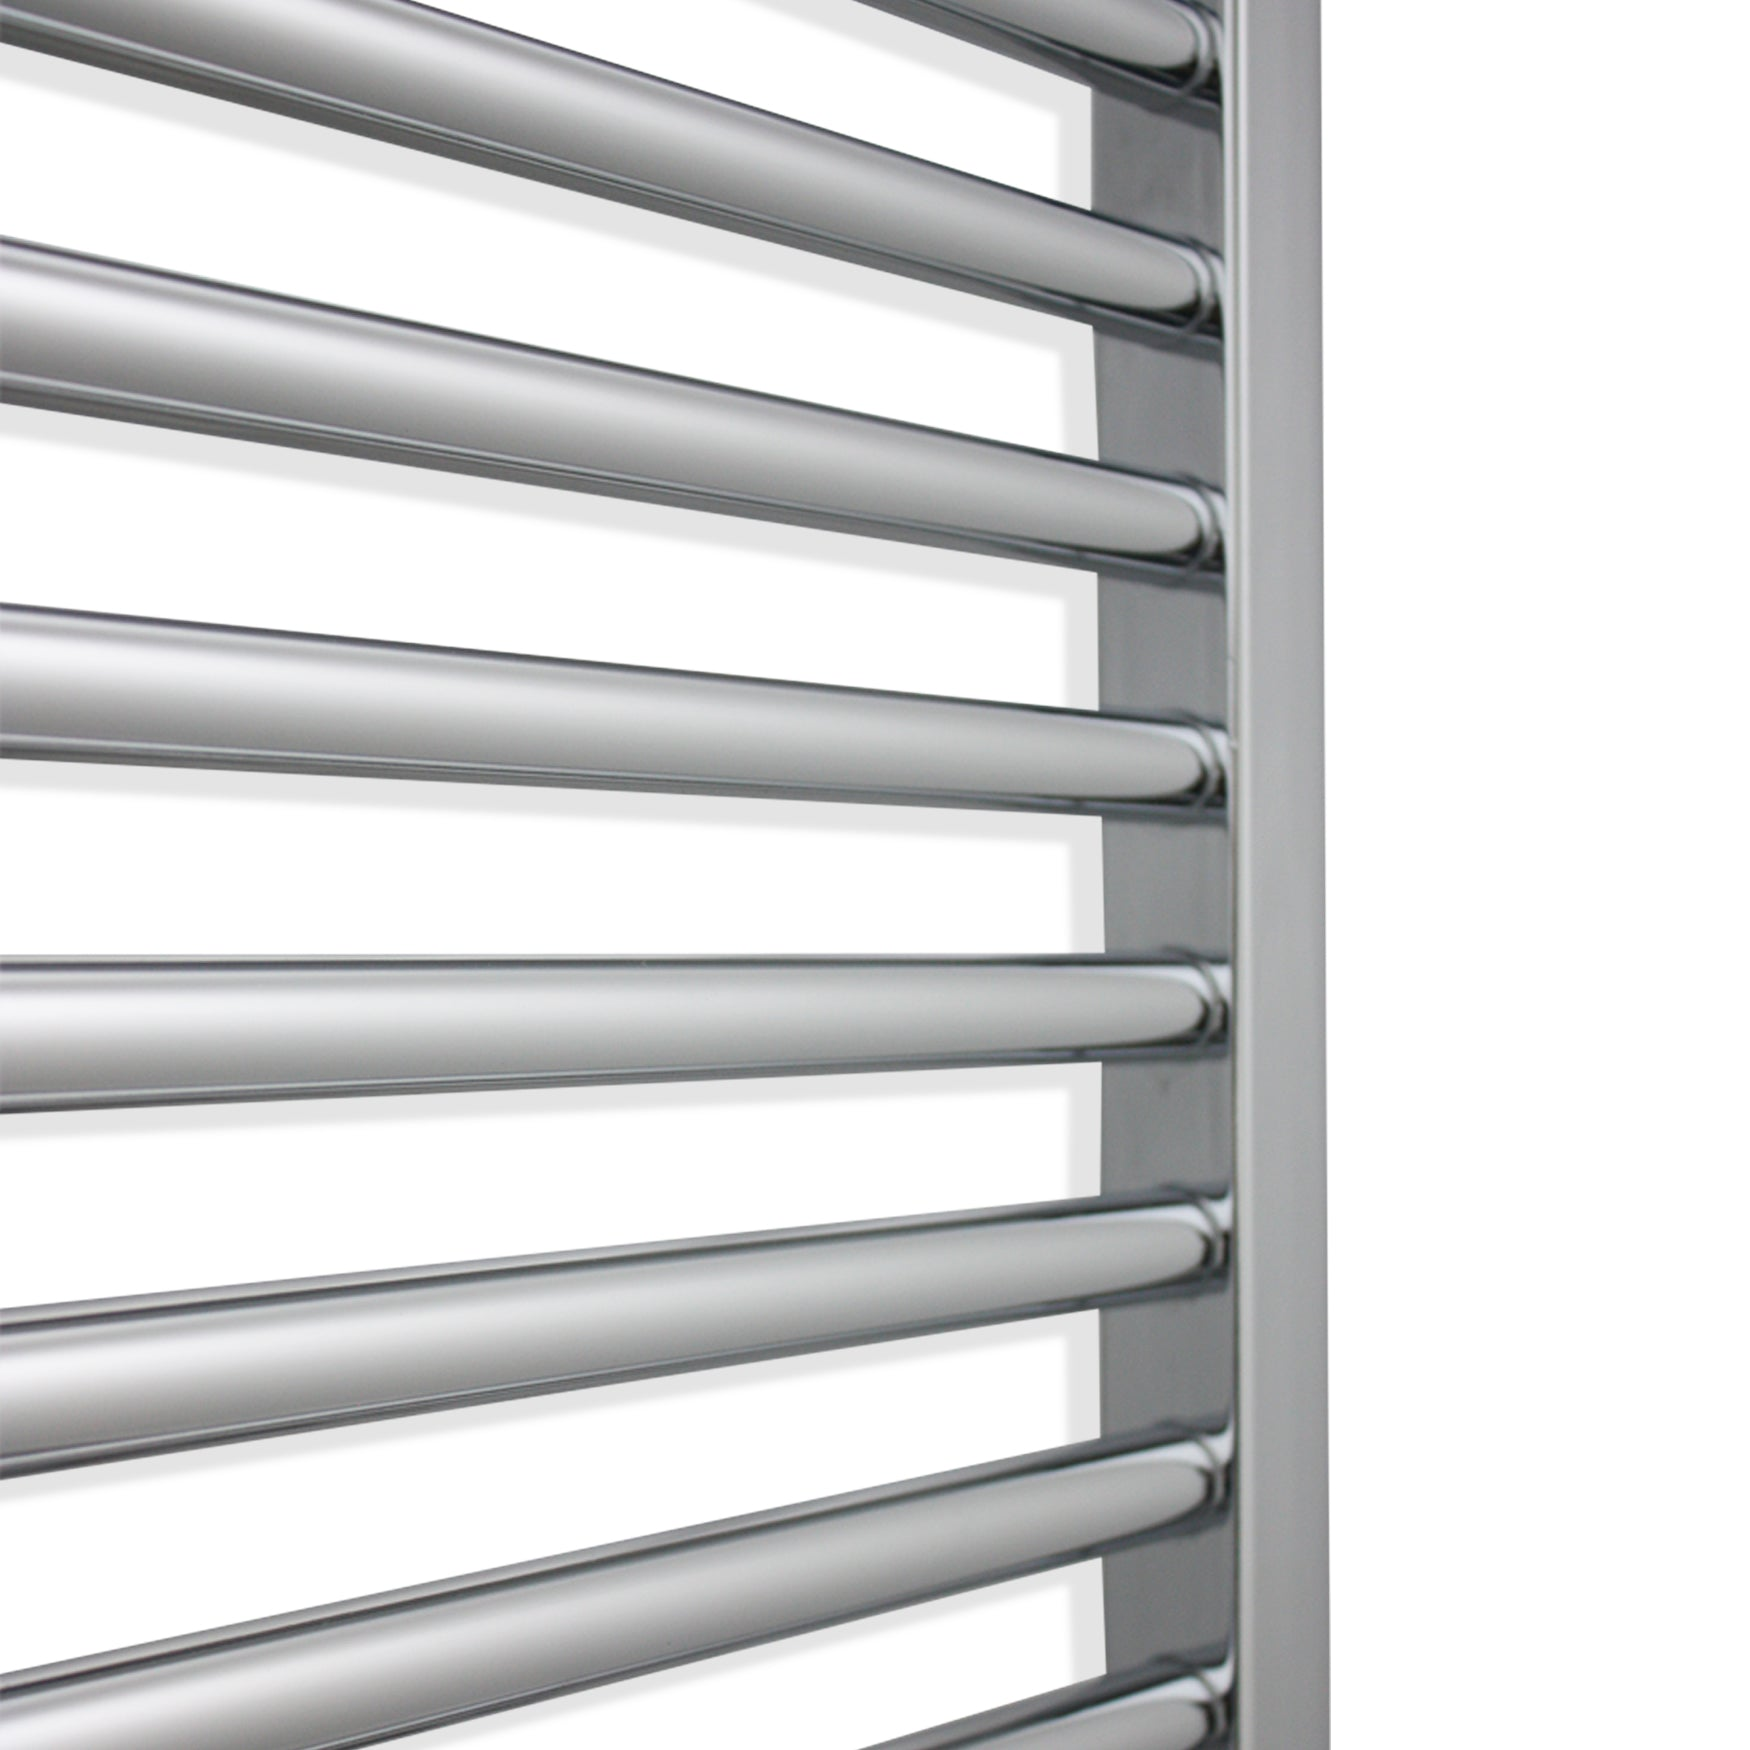 450mm Wide 900mm High Flat Or Curved Chrome Pre-Filled Electric Heated Towel Rail Radiator HTR